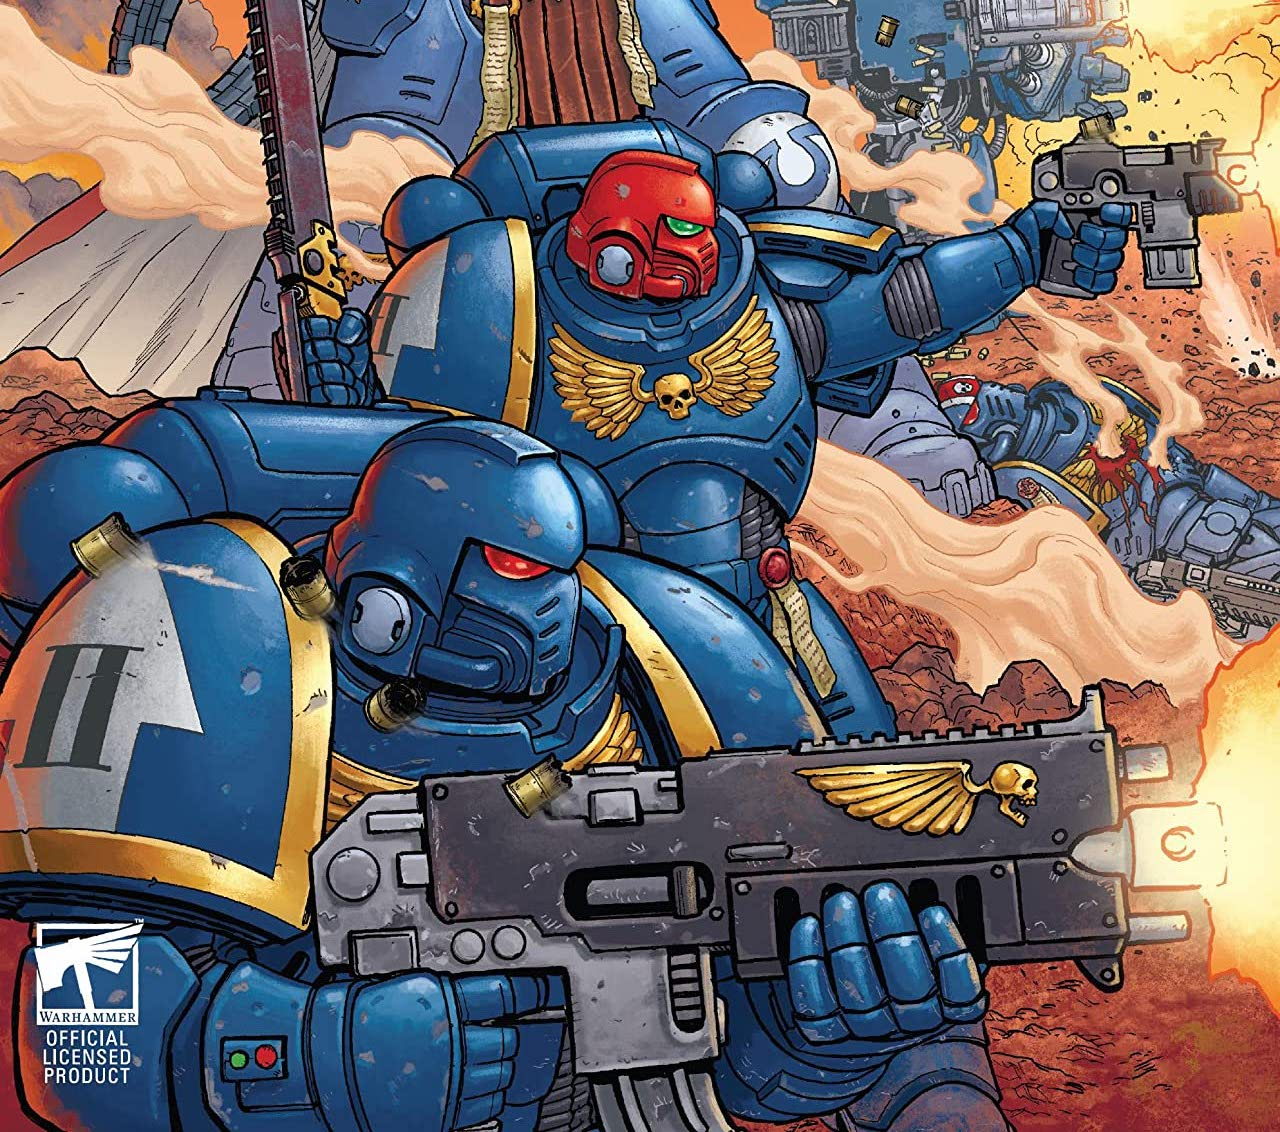 EXCLUSIVE Marvel Preview: Warhammer 40,000: Marneus Calgar #1